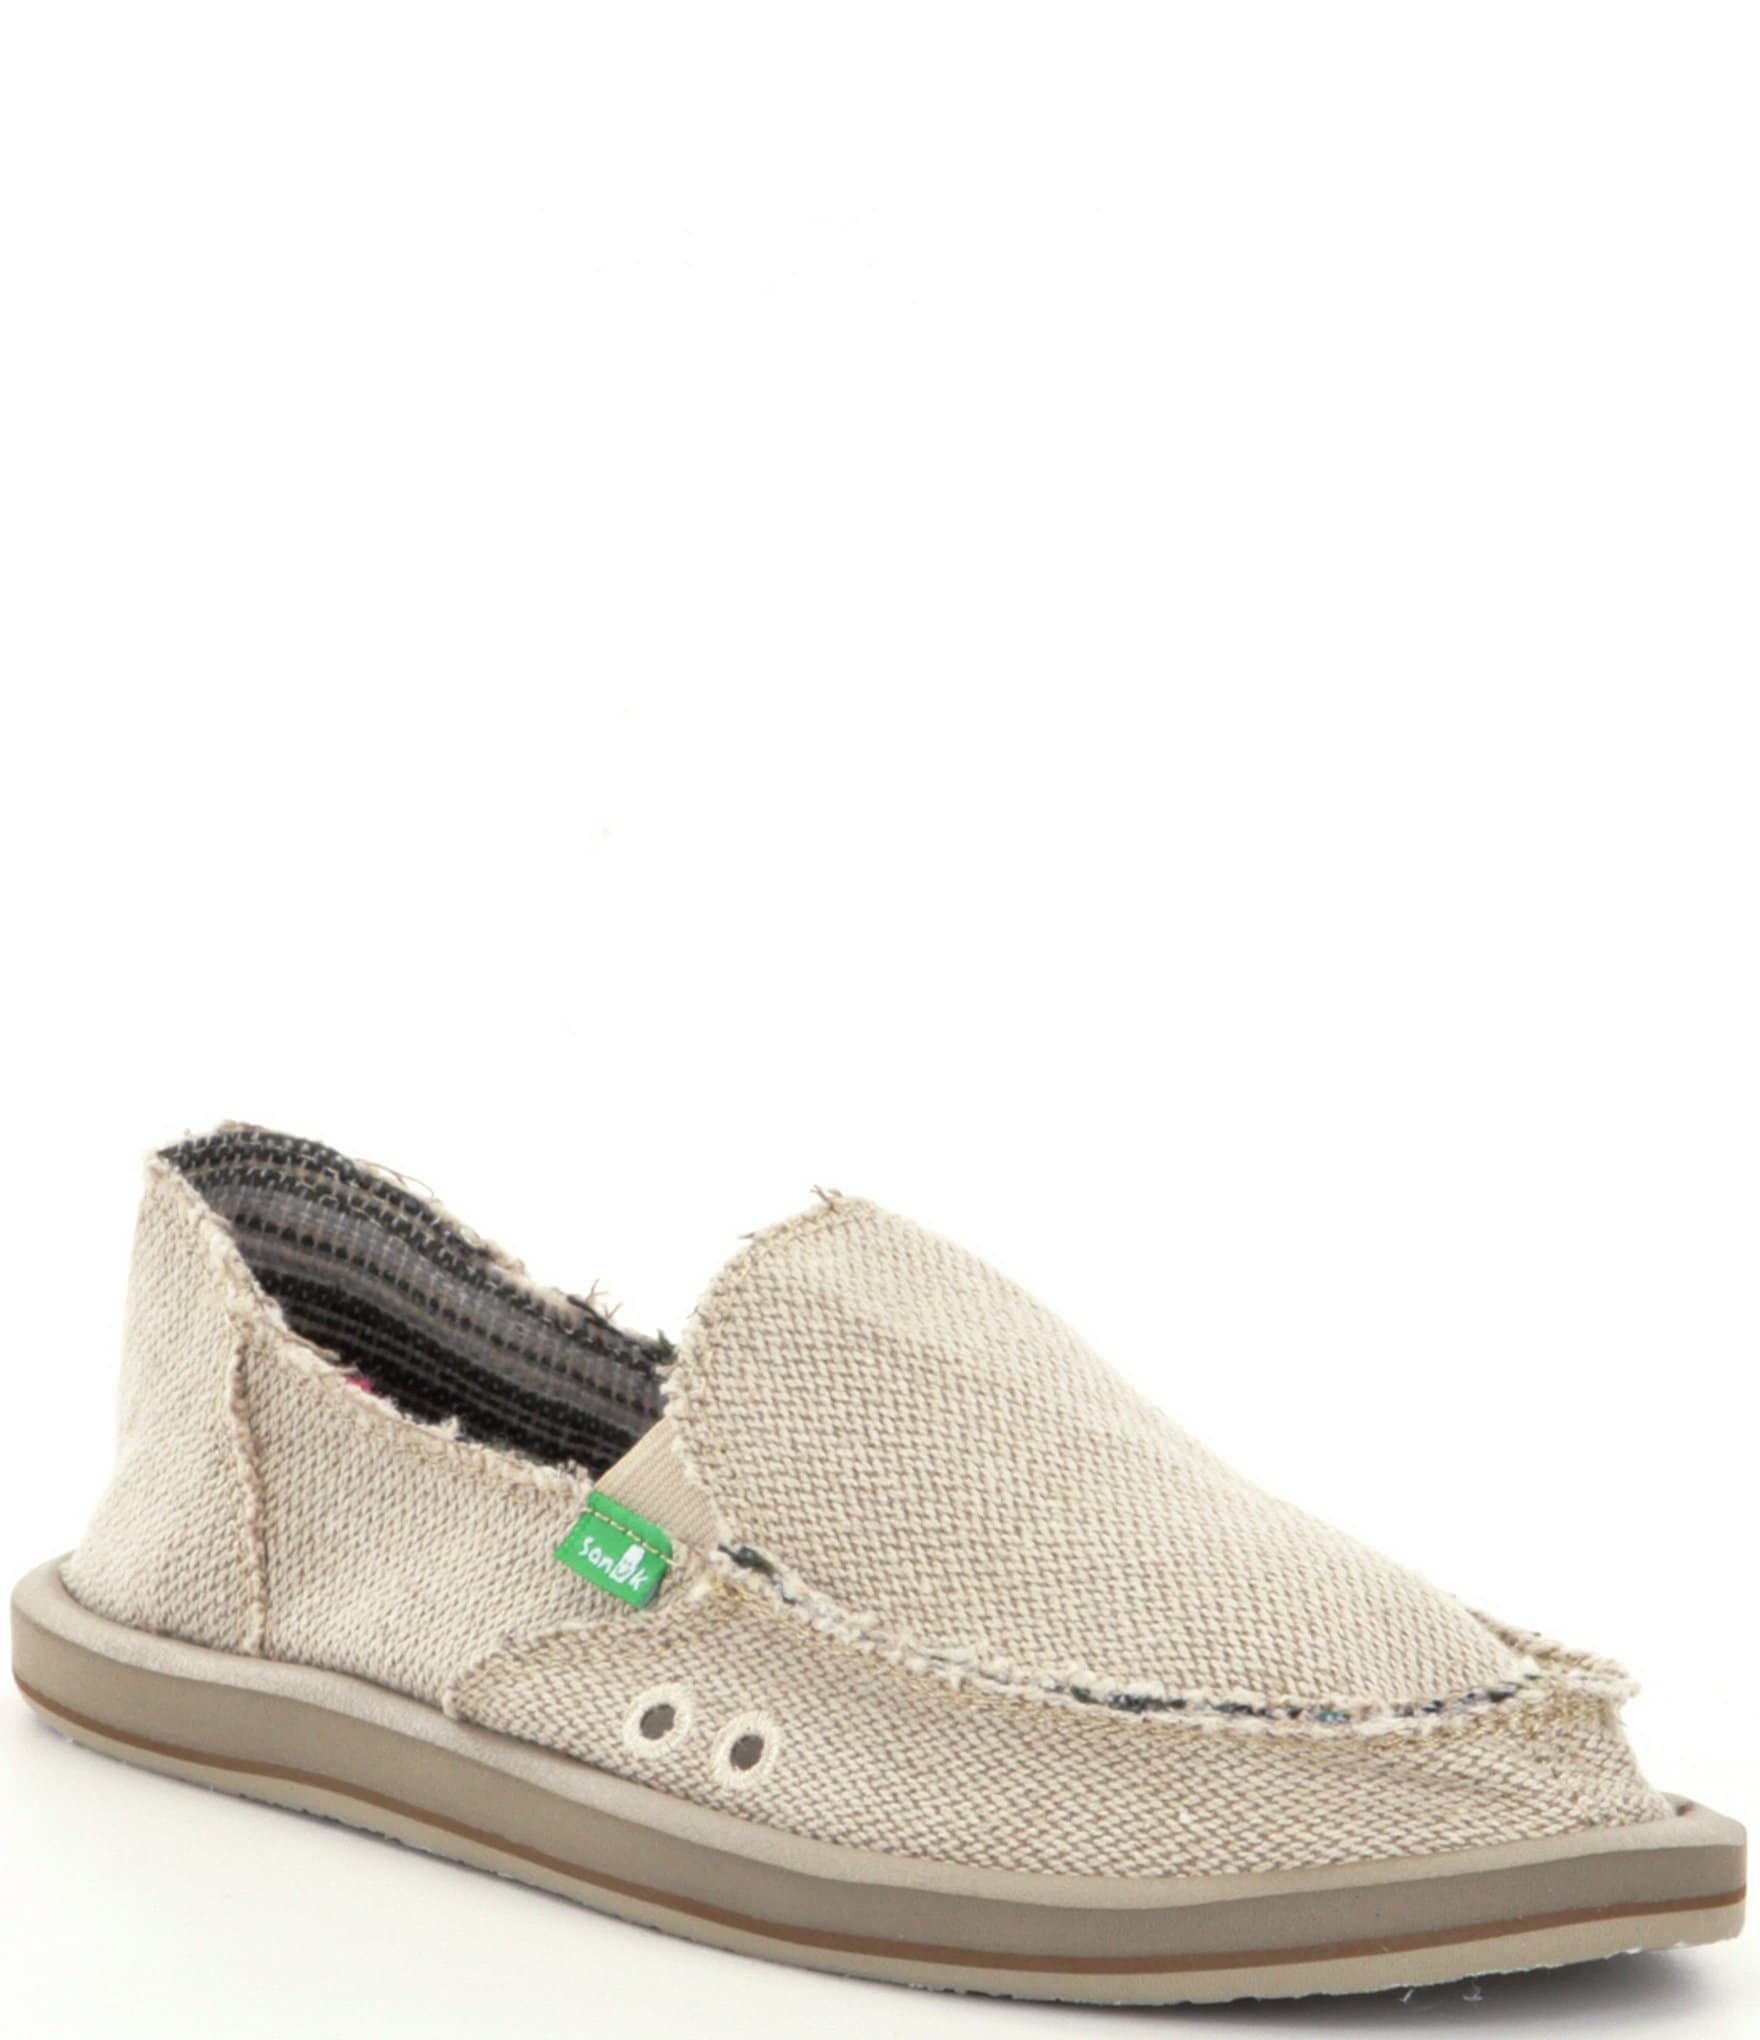 sanuk donna hemp slip on shoes dillards